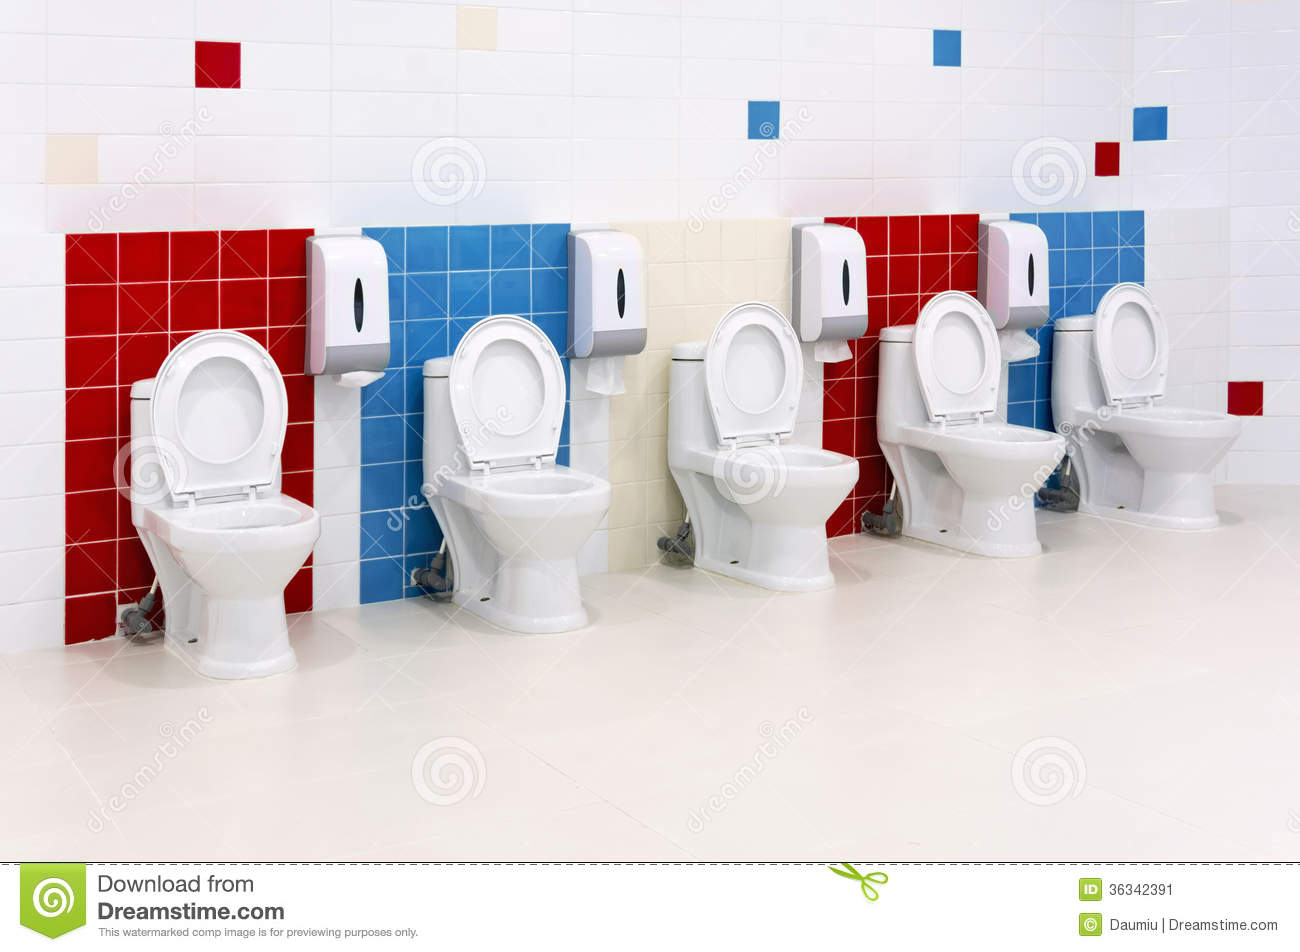 Preschool Washroom Stock Image - Image: 36342391